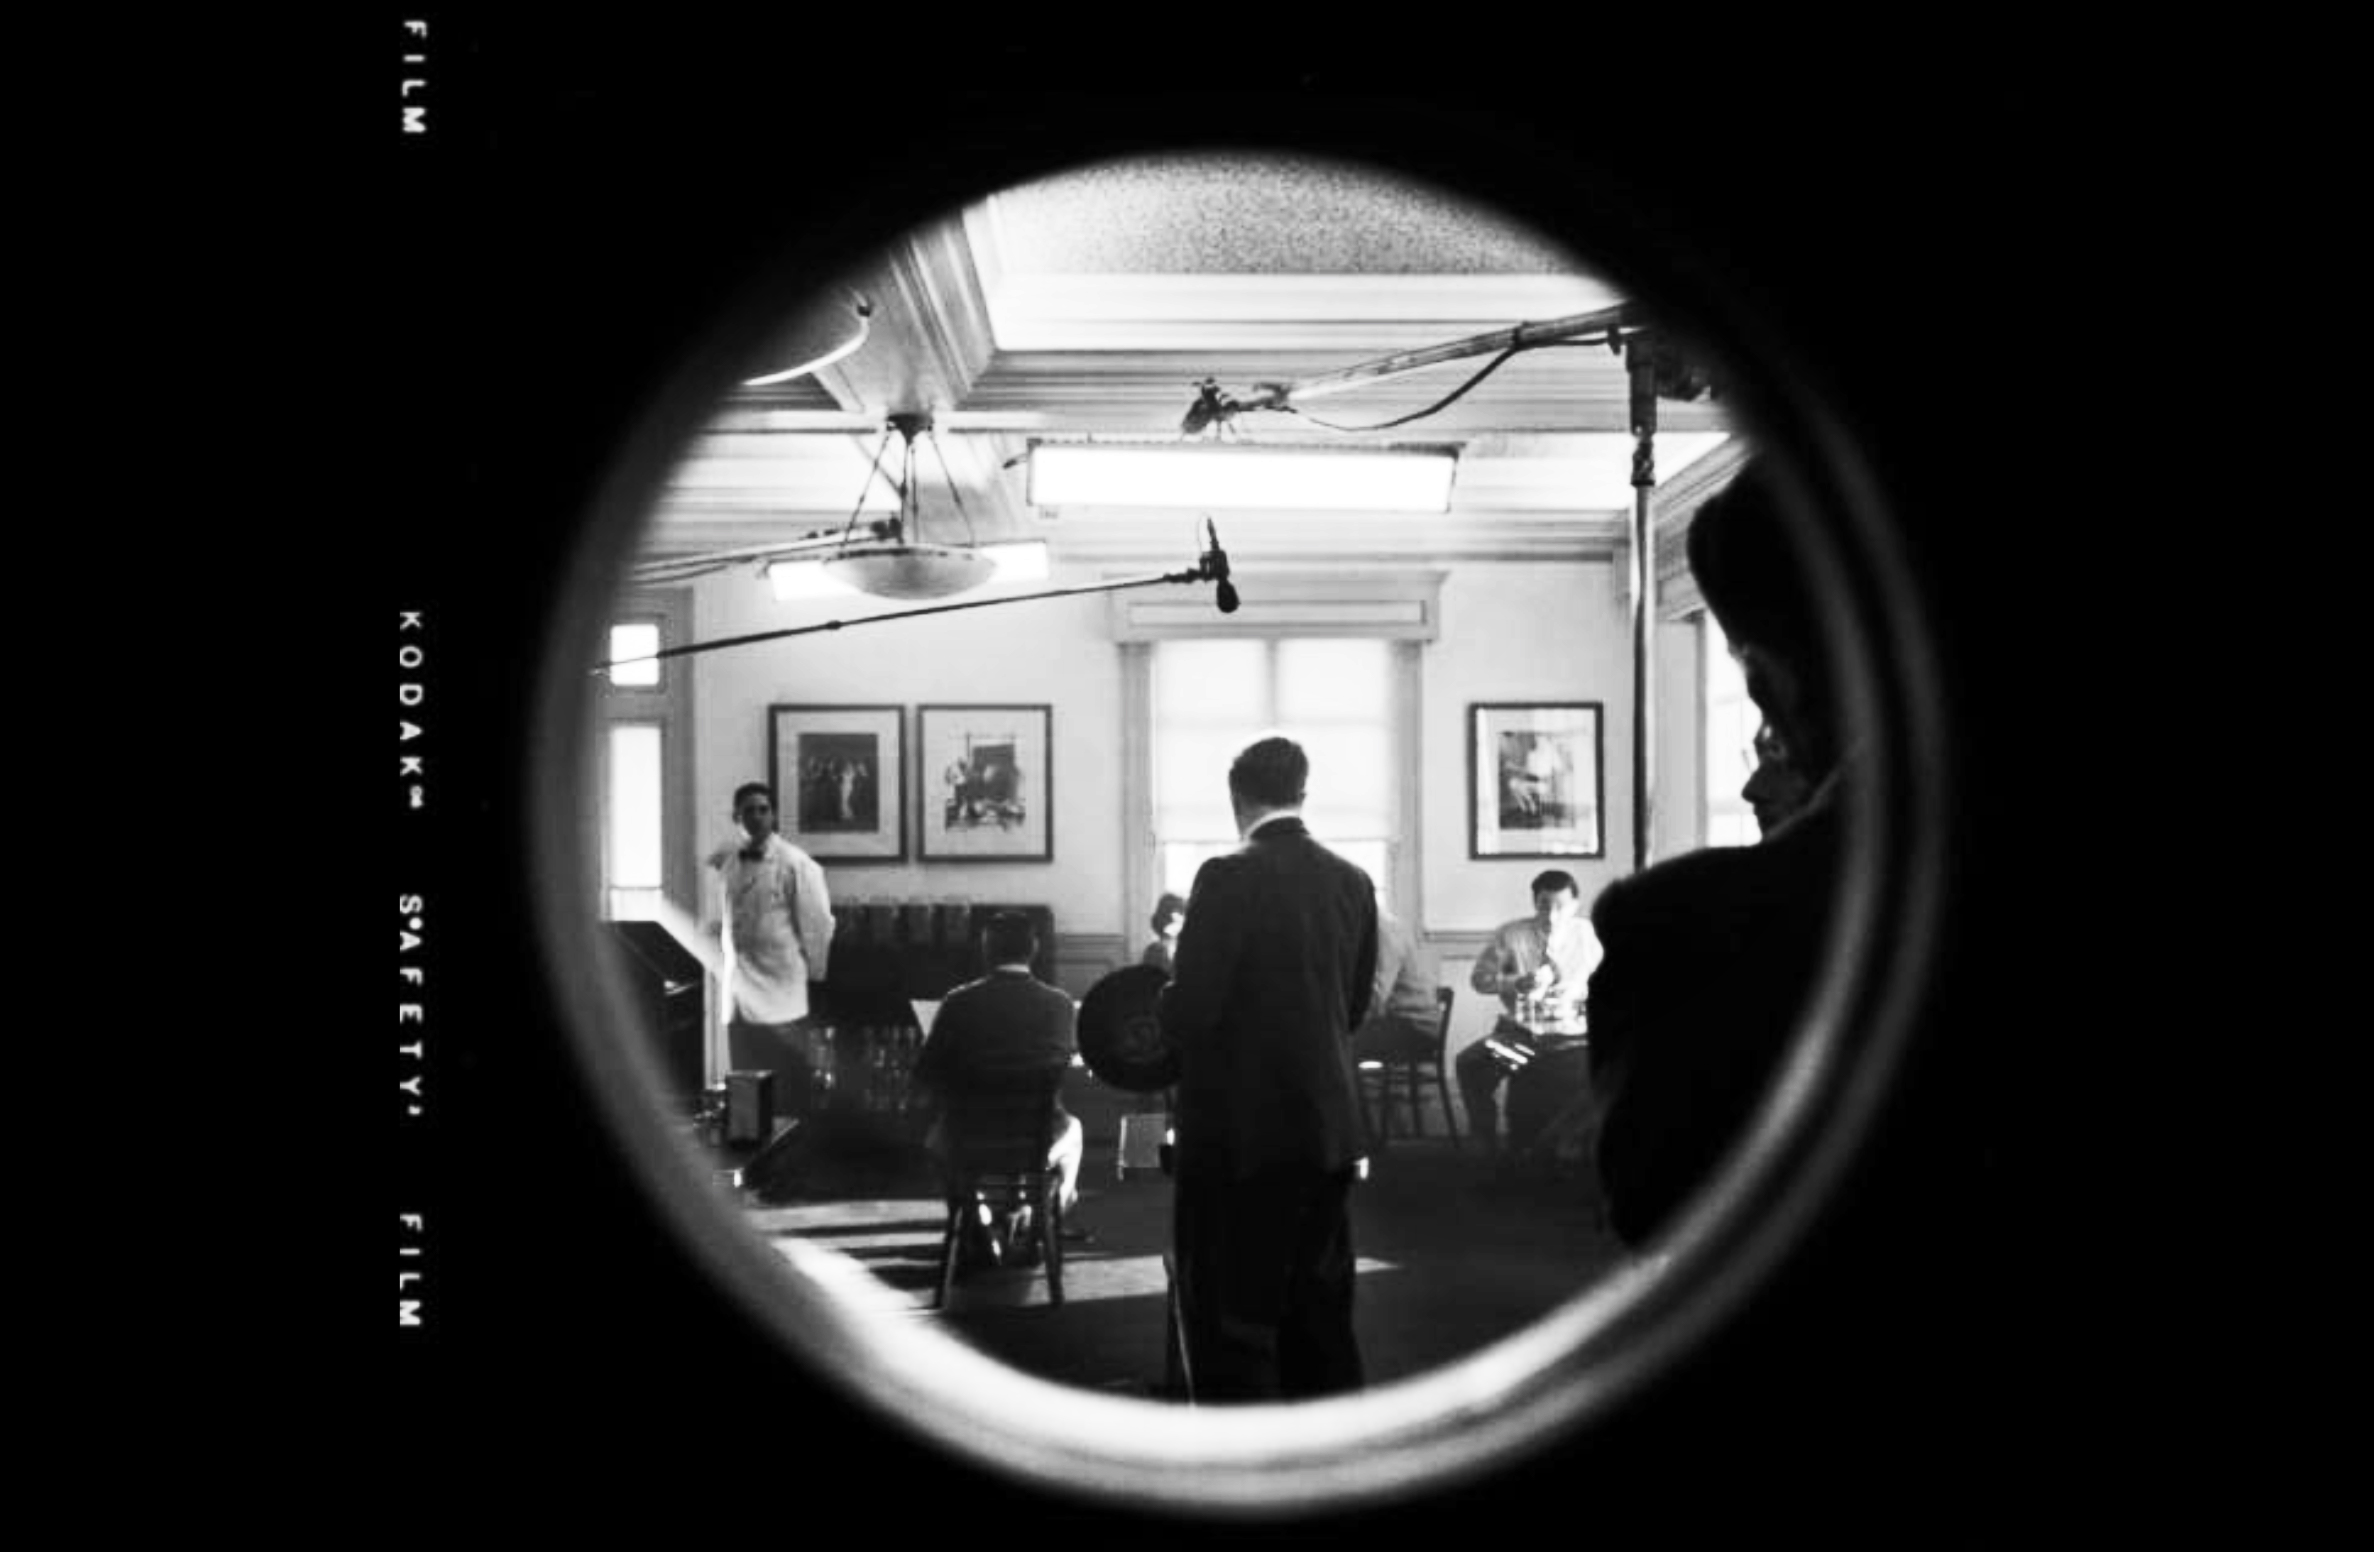 The image looks through a round window into a room where a film is being shot.